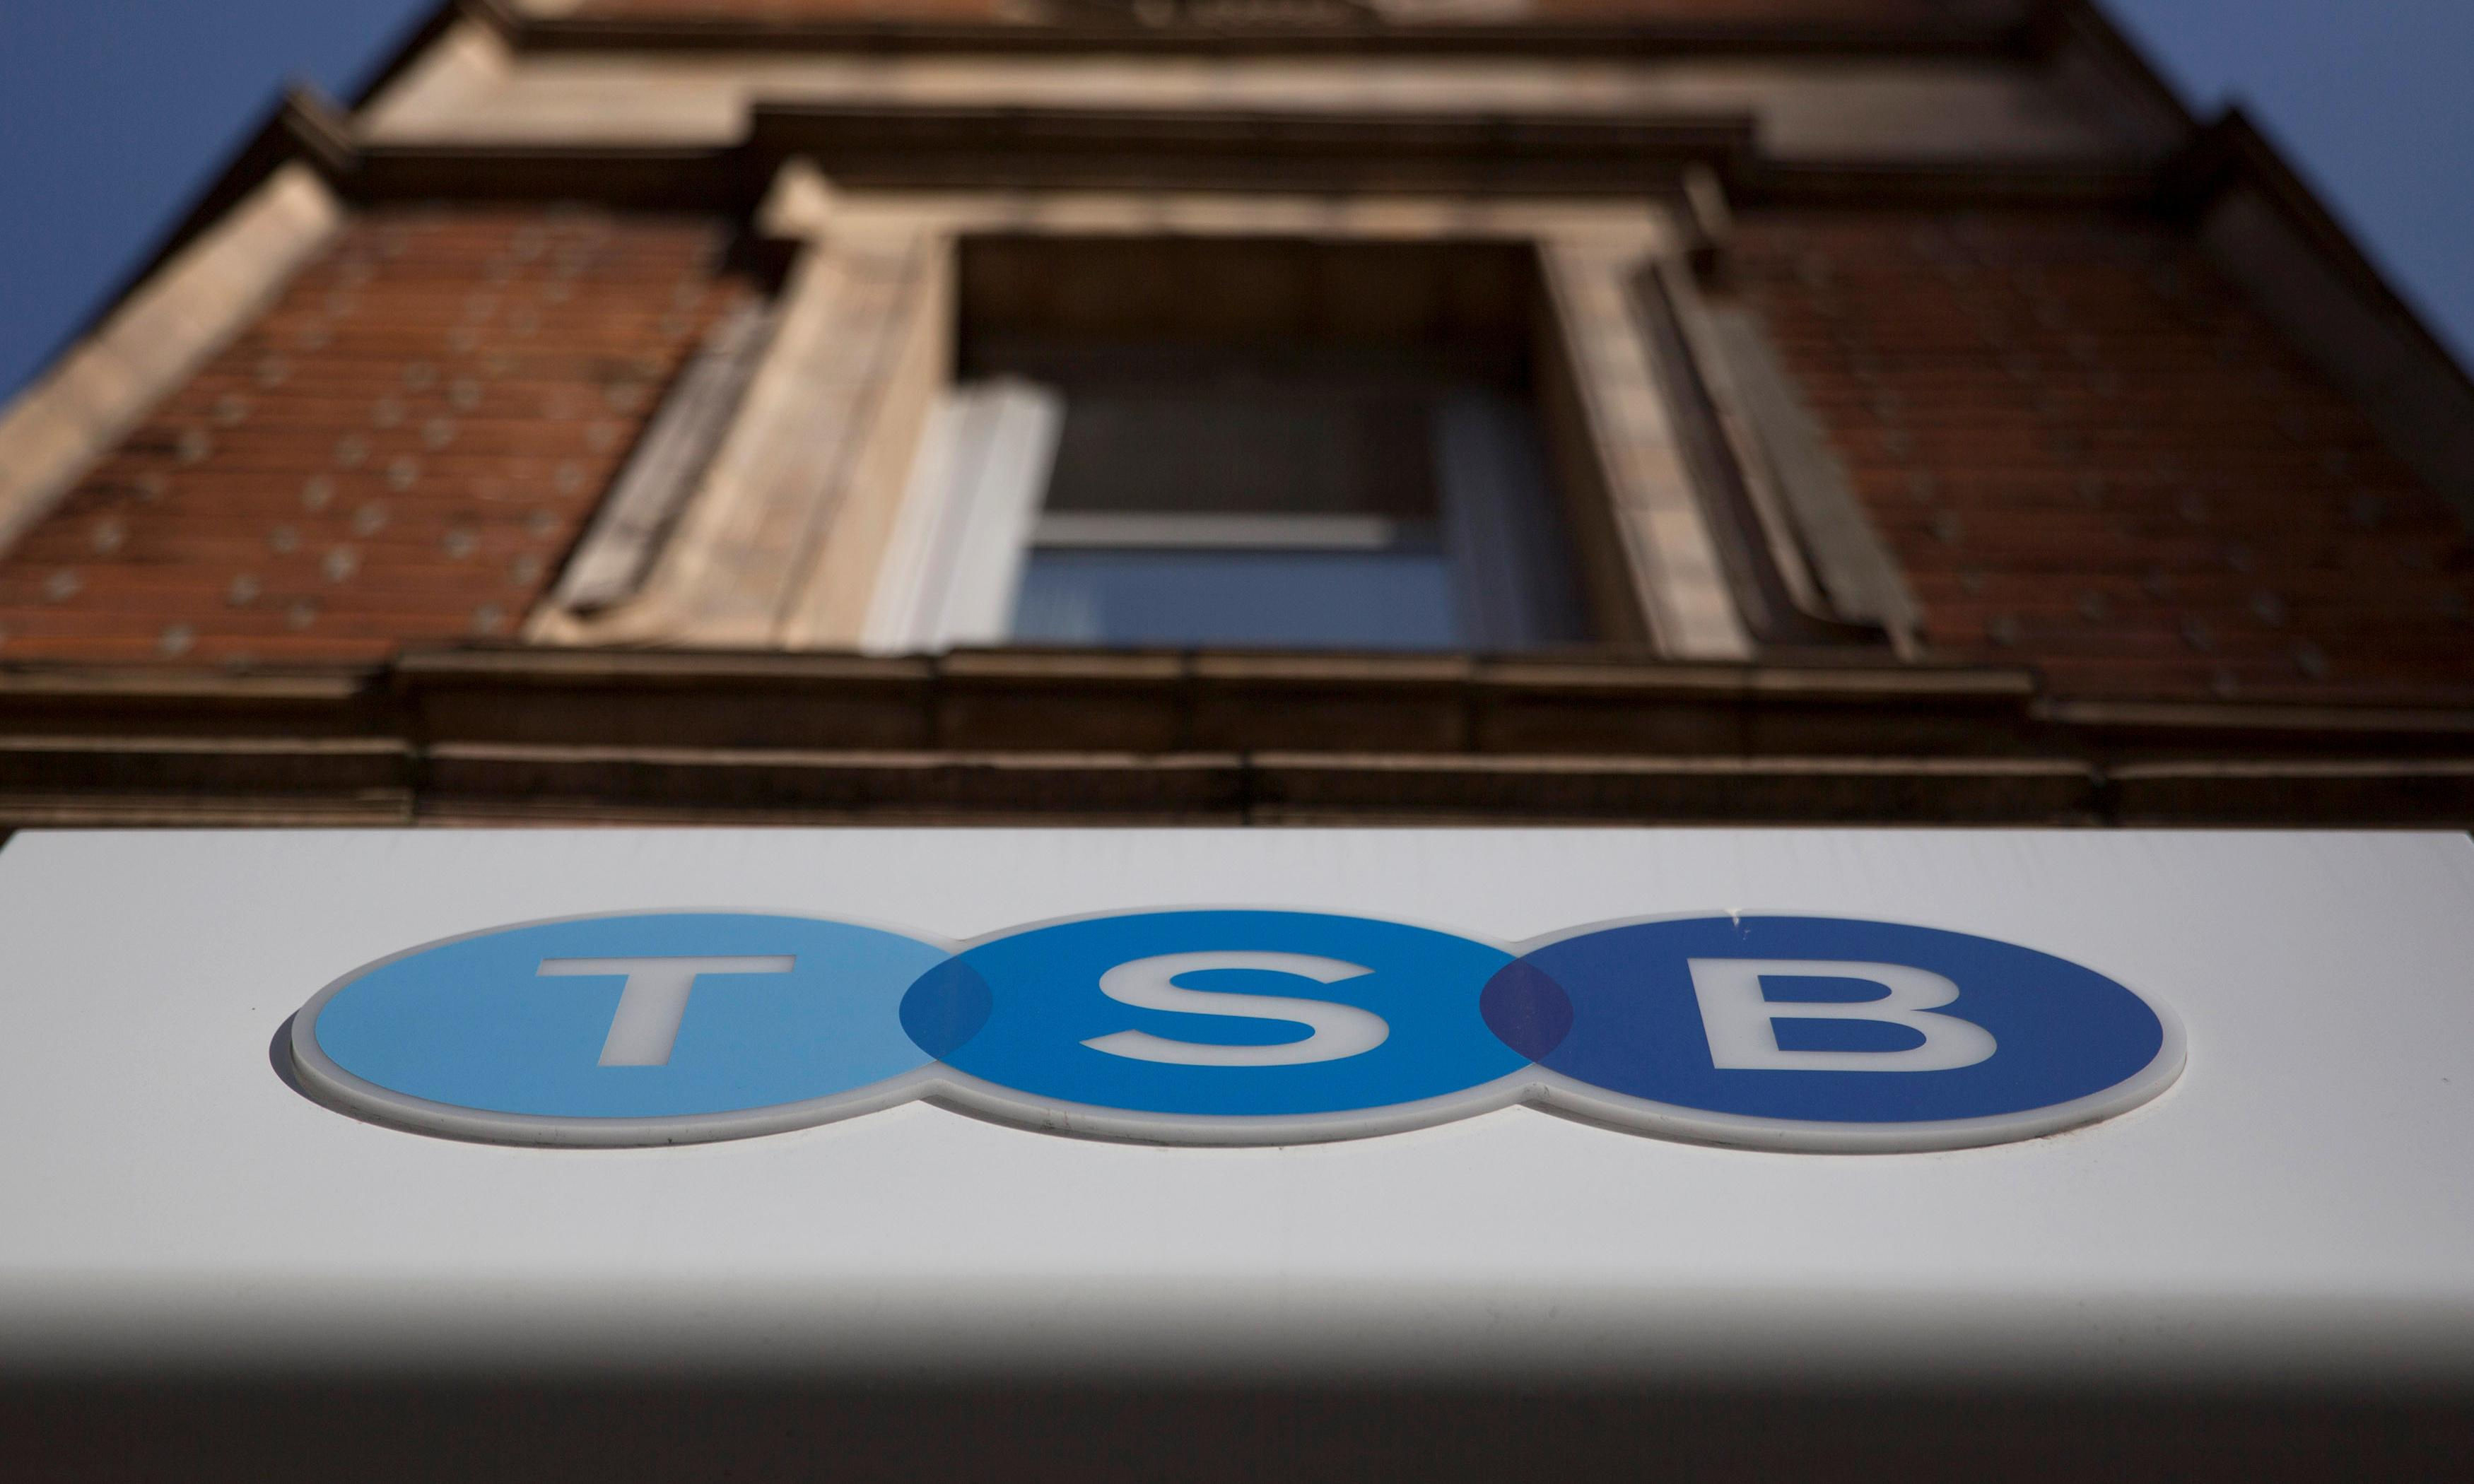 Should we really care about bank branch closures?